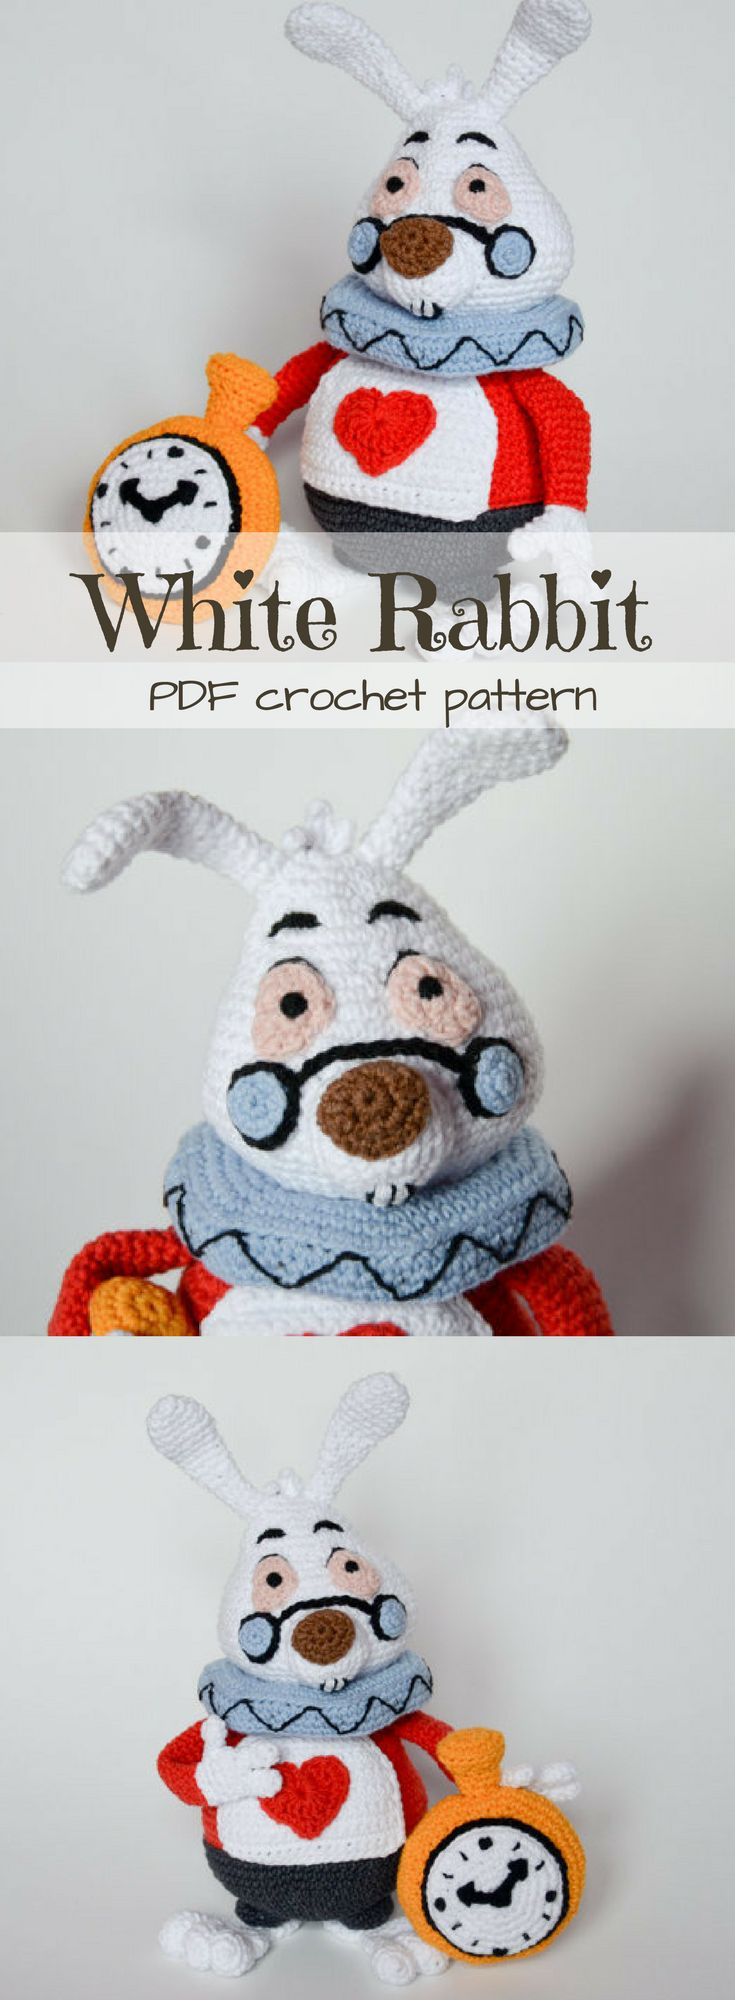 Alice in Wonderland White Rabbit stuffed toy crochet pattern. I love the little clock! He is such a good rendering of the Disney character! This amigurumi pattern looks so fun to make! #etsy #ad #doll #crochet #pdf #pattern #instantdownload